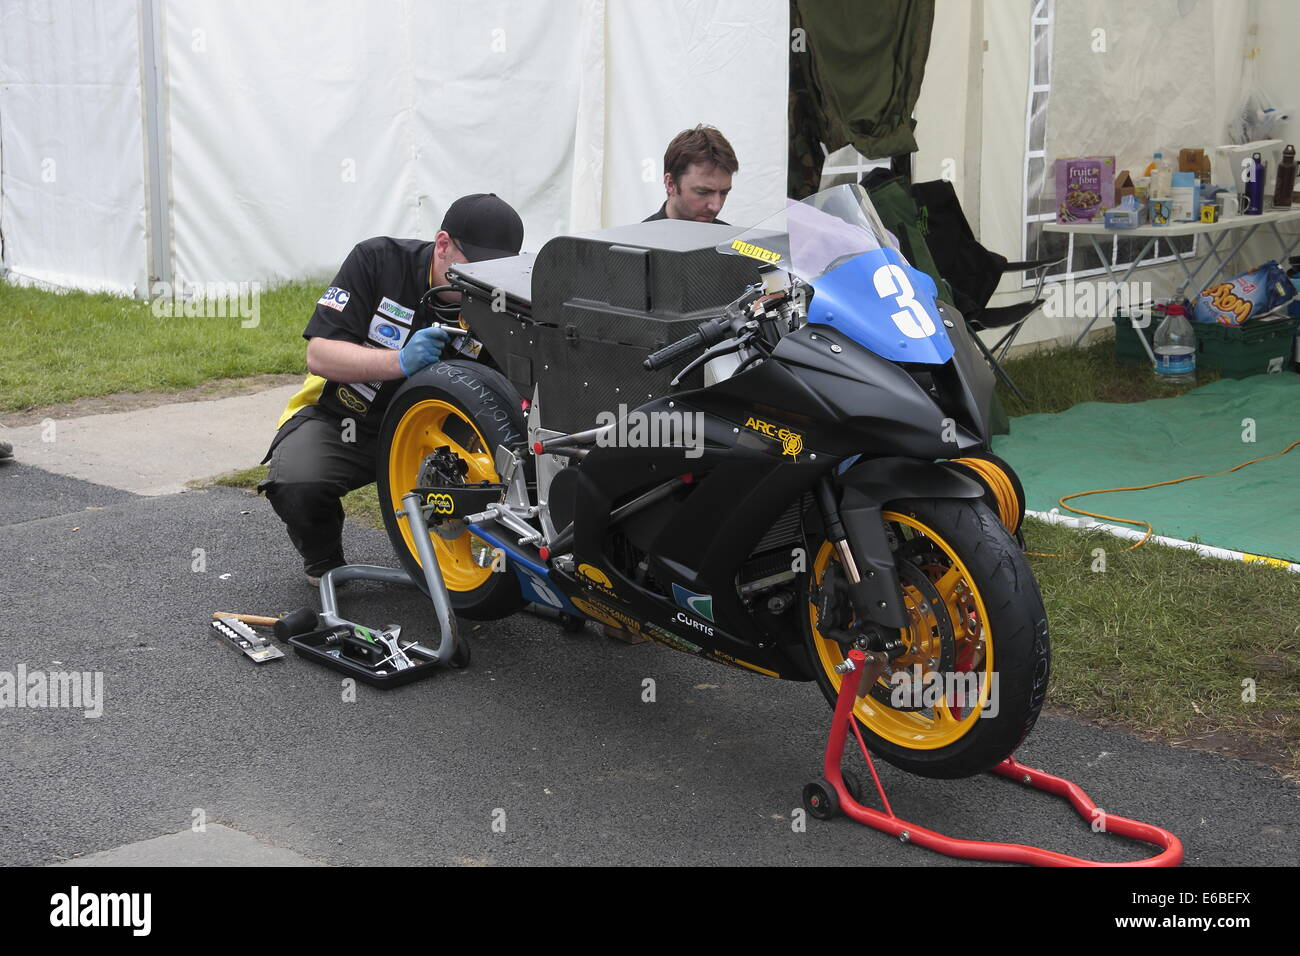 Brenden Rice and Matt Bagshawe working on the ARC-EV3 electric motorcycle, in the paddock for the 2014 Manx TT. Stock Photo